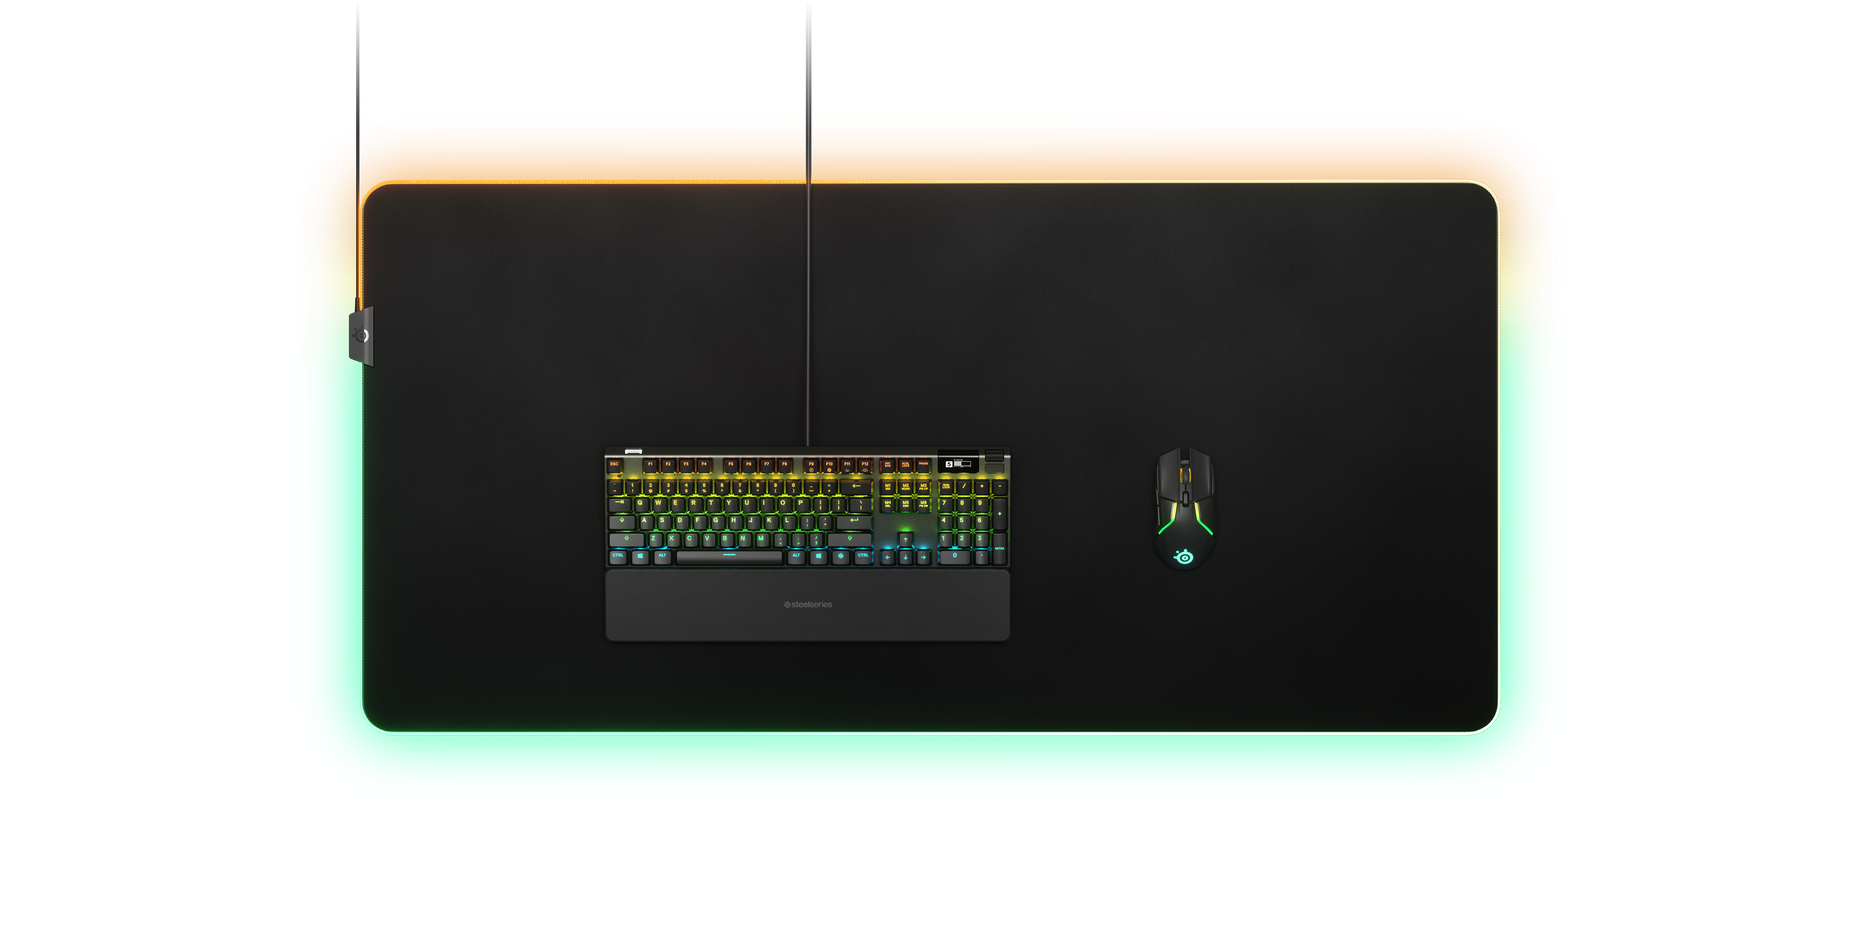 Prism mousepad from above with keyboard and mouse